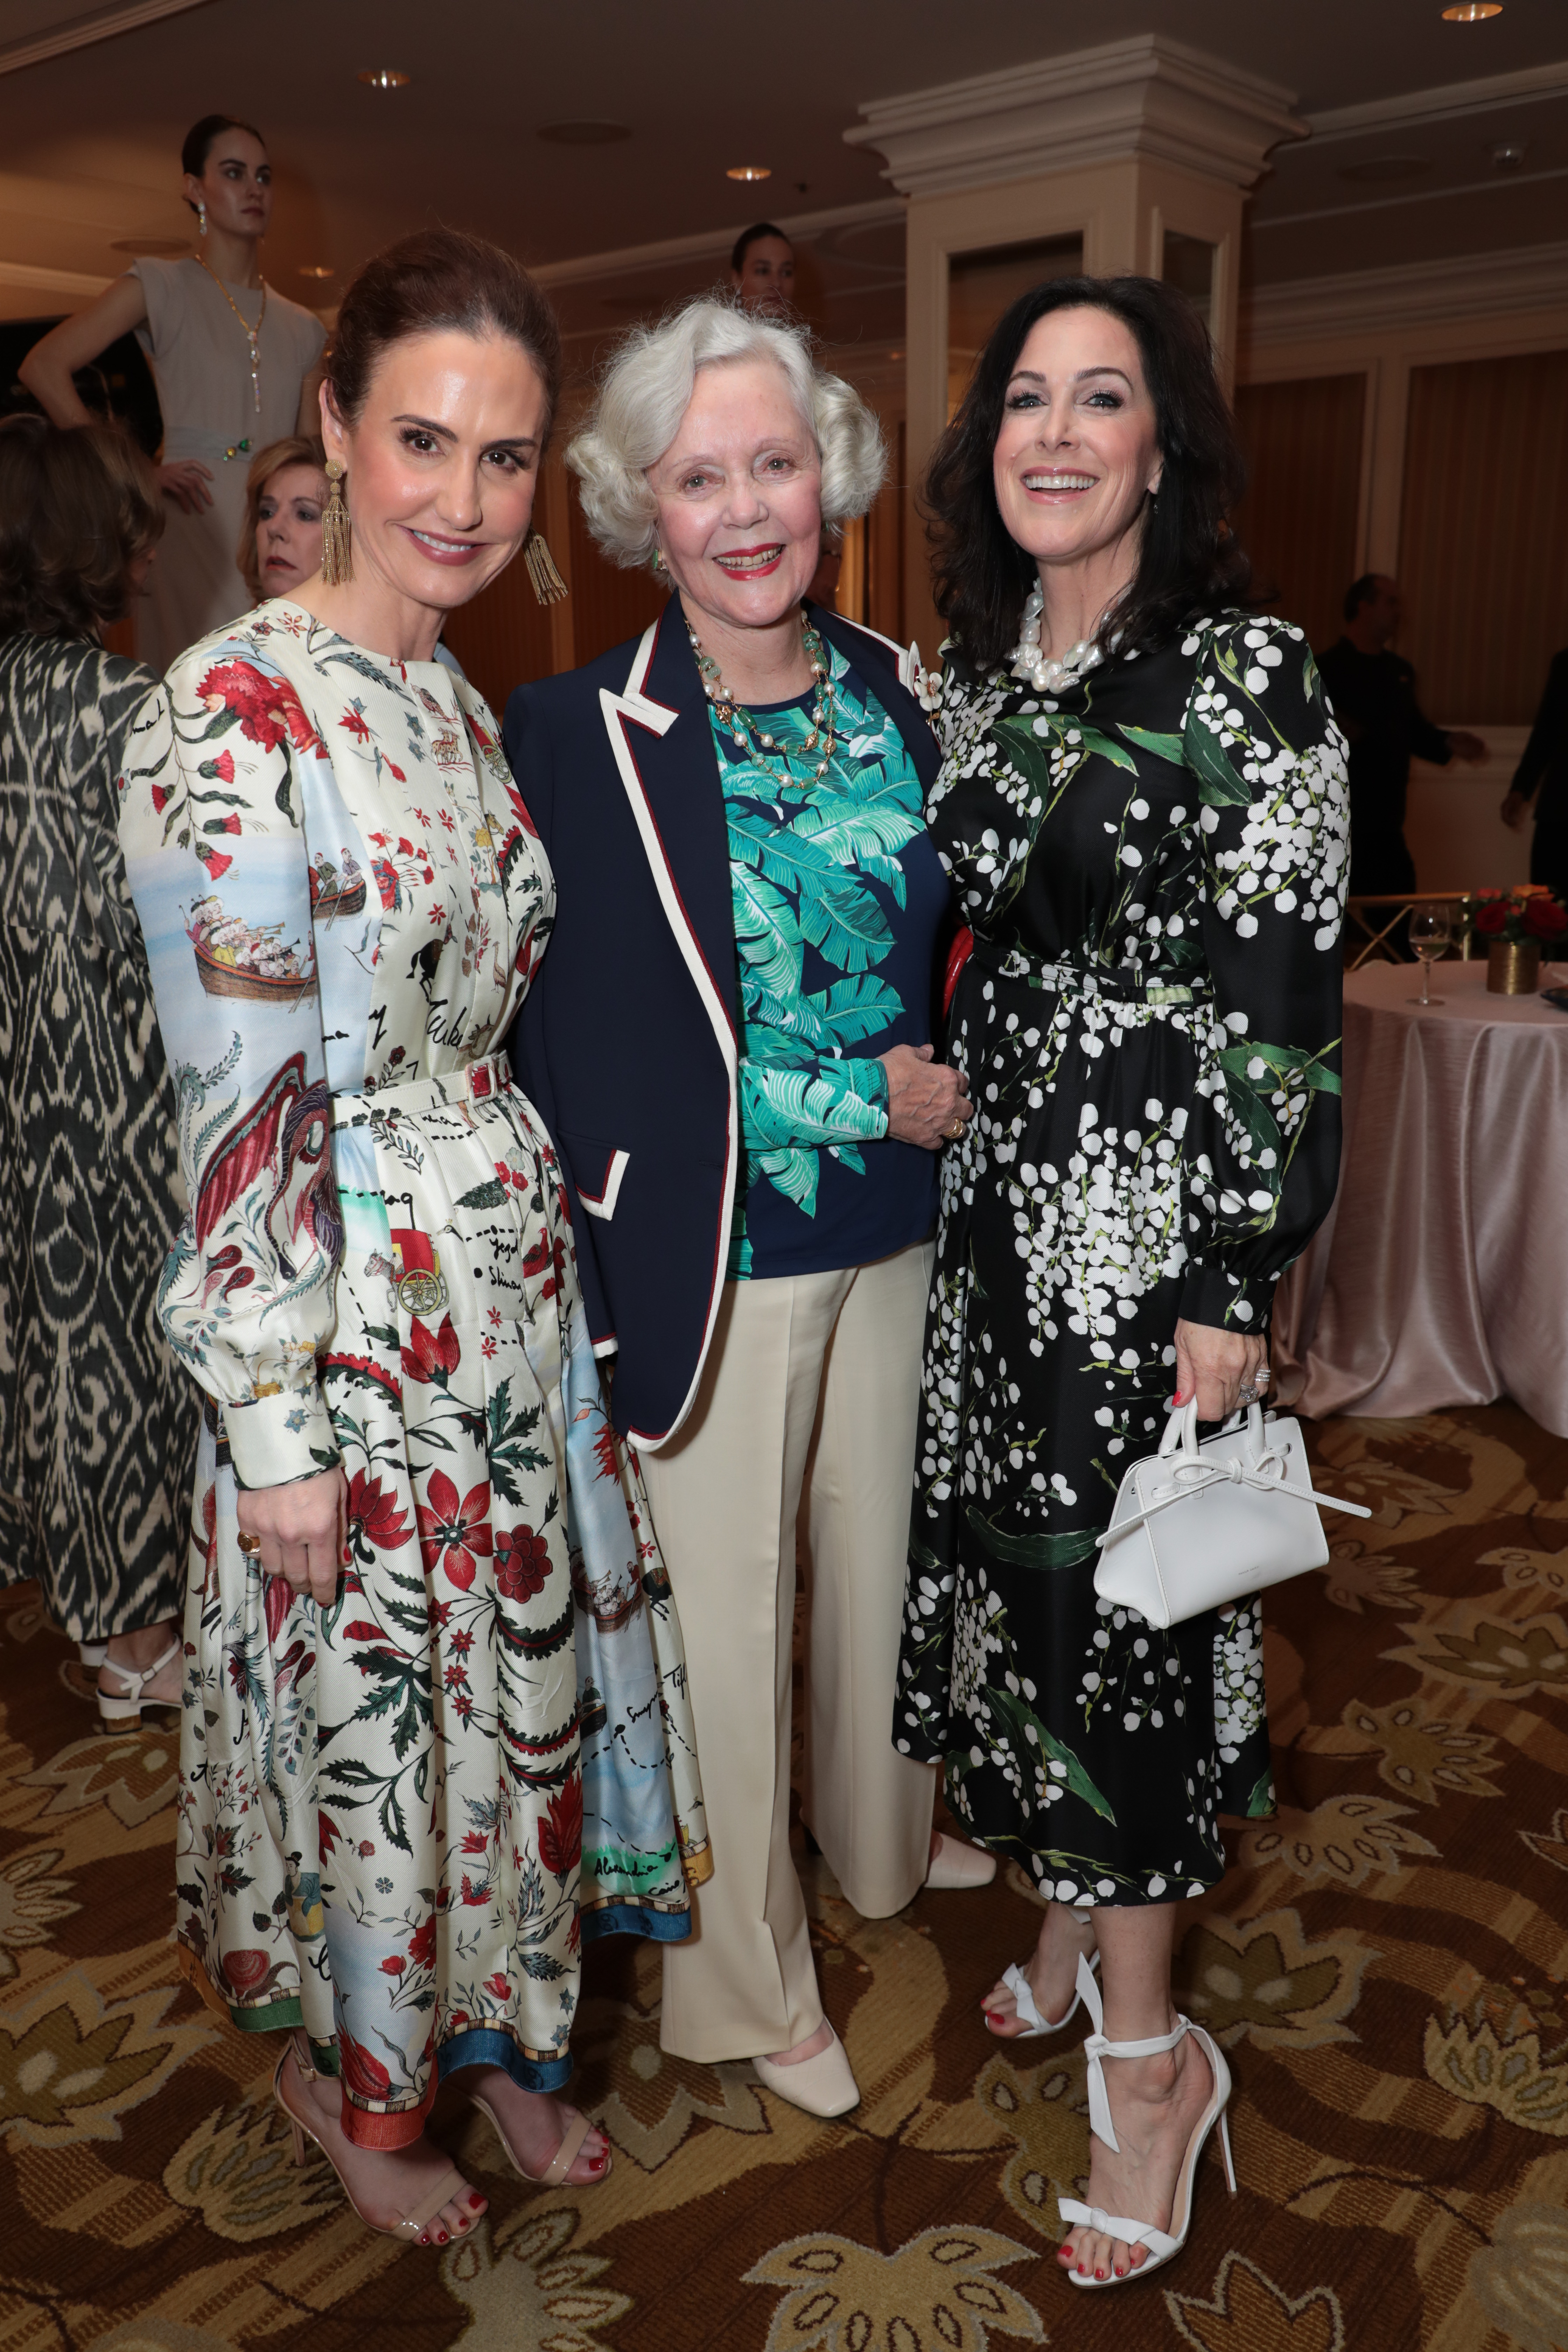 Cara Leonetti Esposito, Topsy Doheny and Bridget Glass Keller attend as The Colleagues host their 31st annual Spring Luncheon and Oscar de la Renta fashion presentation at the Beverly Wilshire Hotel on Tuesday, April 9, 2019 in Beverly Hills, CA (photo: Alex J. Berliner/ABImages)